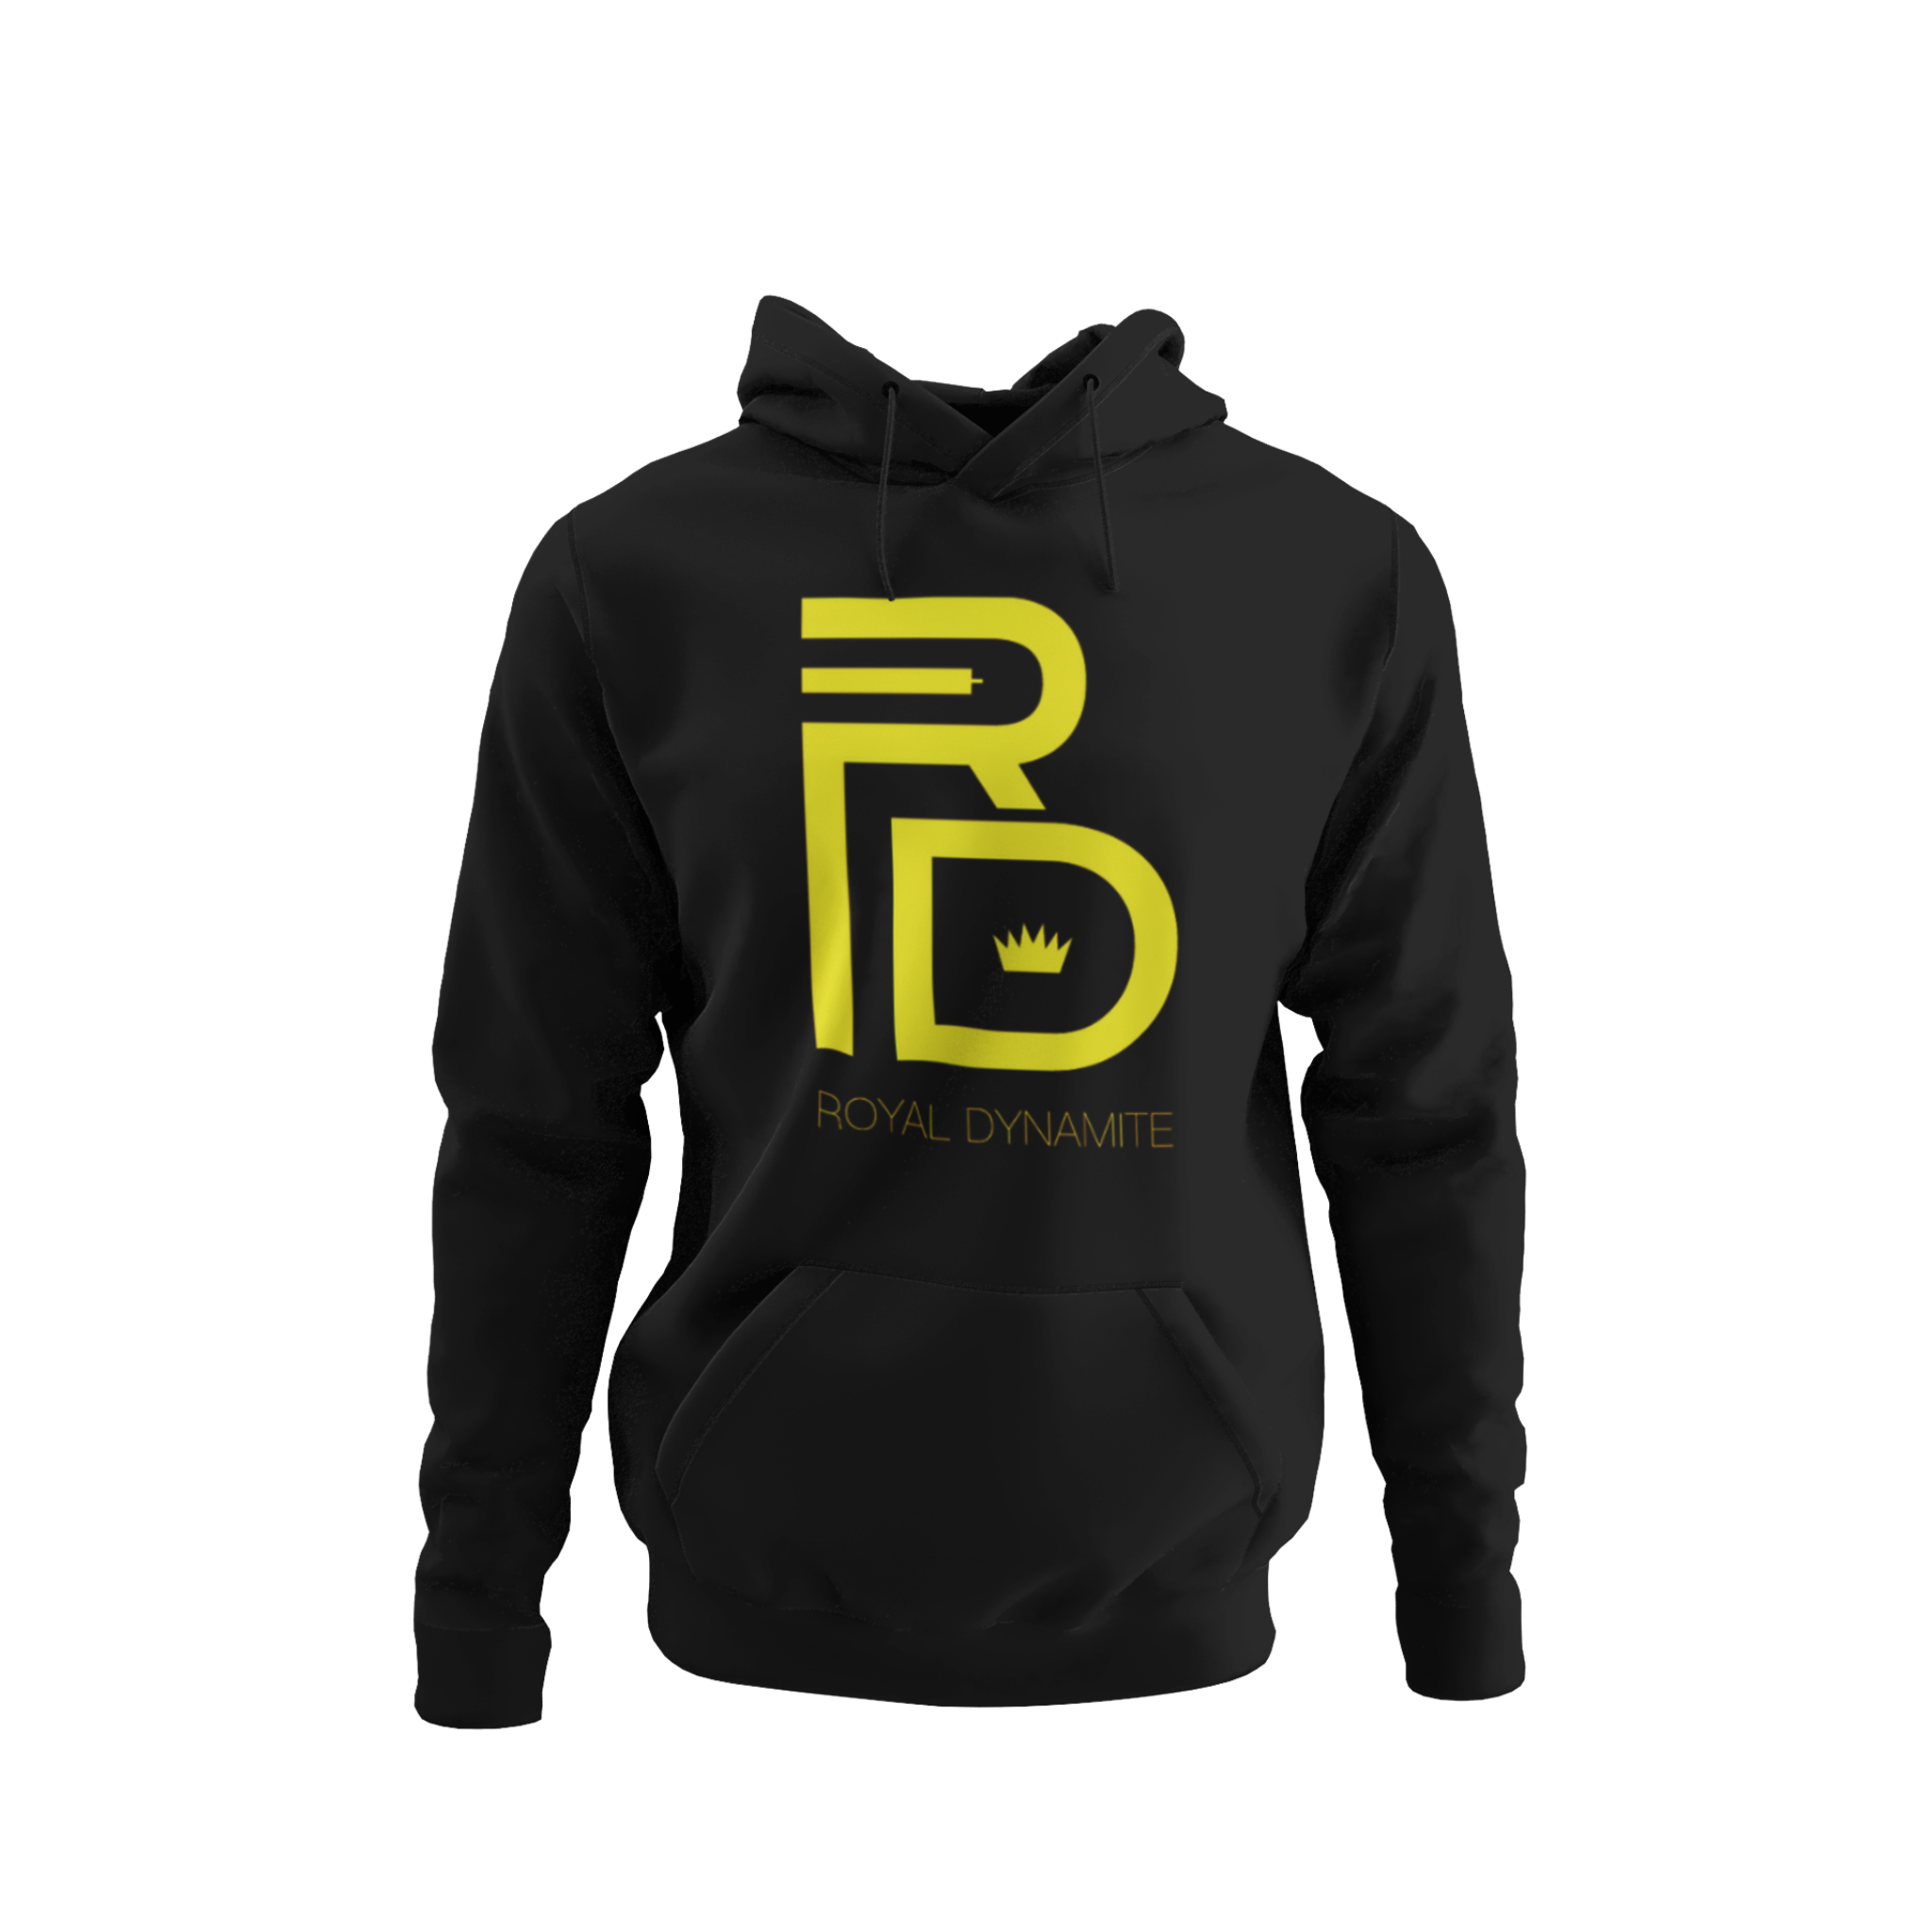 OG RD LOGO HOODIE BLACK & YELLOW - Royal Dynamite